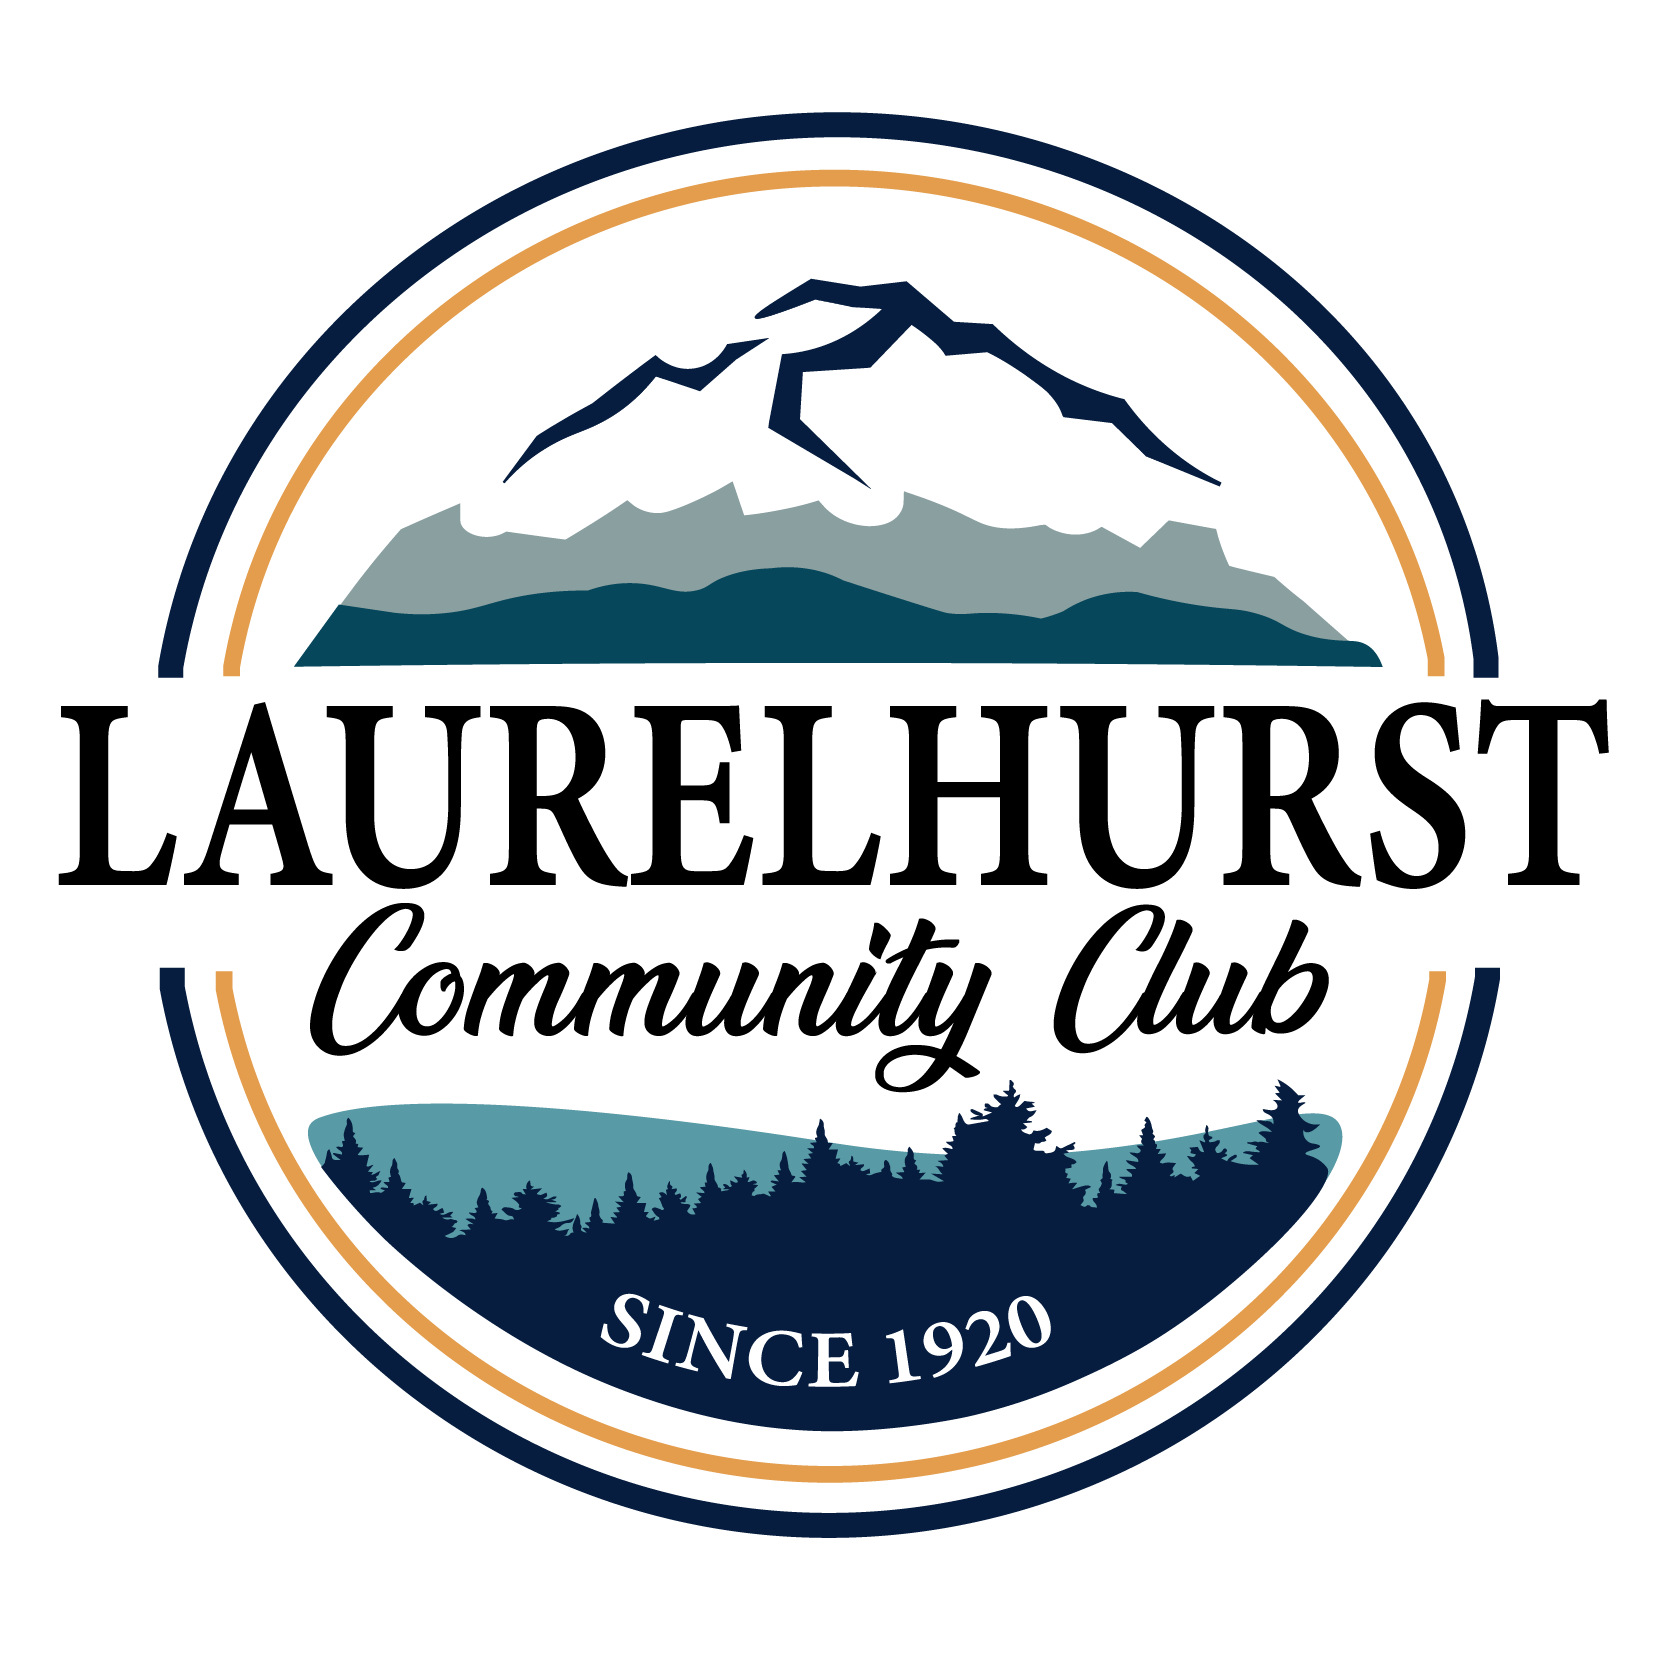 Laurelhurst Community Club